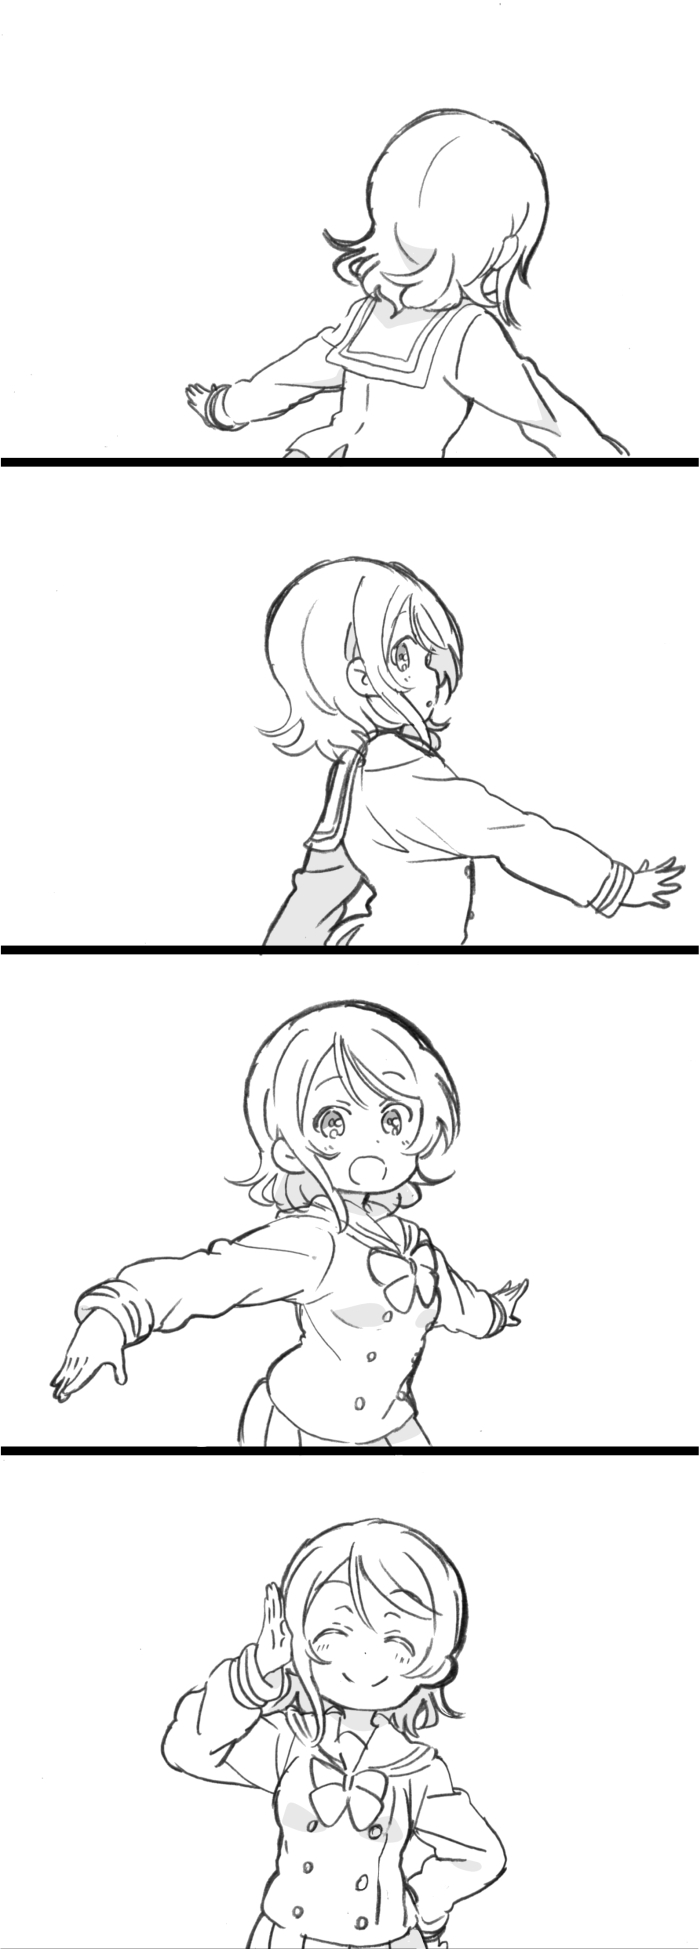 1girl 4koma :d ^_^ closed_eyes closed_eyes comic facing_away facing_viewer from_side greyscale hand_on_hip hand_up highres long_sleeves looking_at_viewer looking_back love_live! love_live!_sunshine!! mezashi_(mezamashi_set) monochrome neck_ribbon open_mouth outstretched_arms parted_lips pleated_skirt profile ribbon sailor_collar salute school_uniform serafuku short_hair silent_comic simple_background skirt smile solo spread_arms tareme upper_body uranohoshi_school_uniform watanabe_you white_background